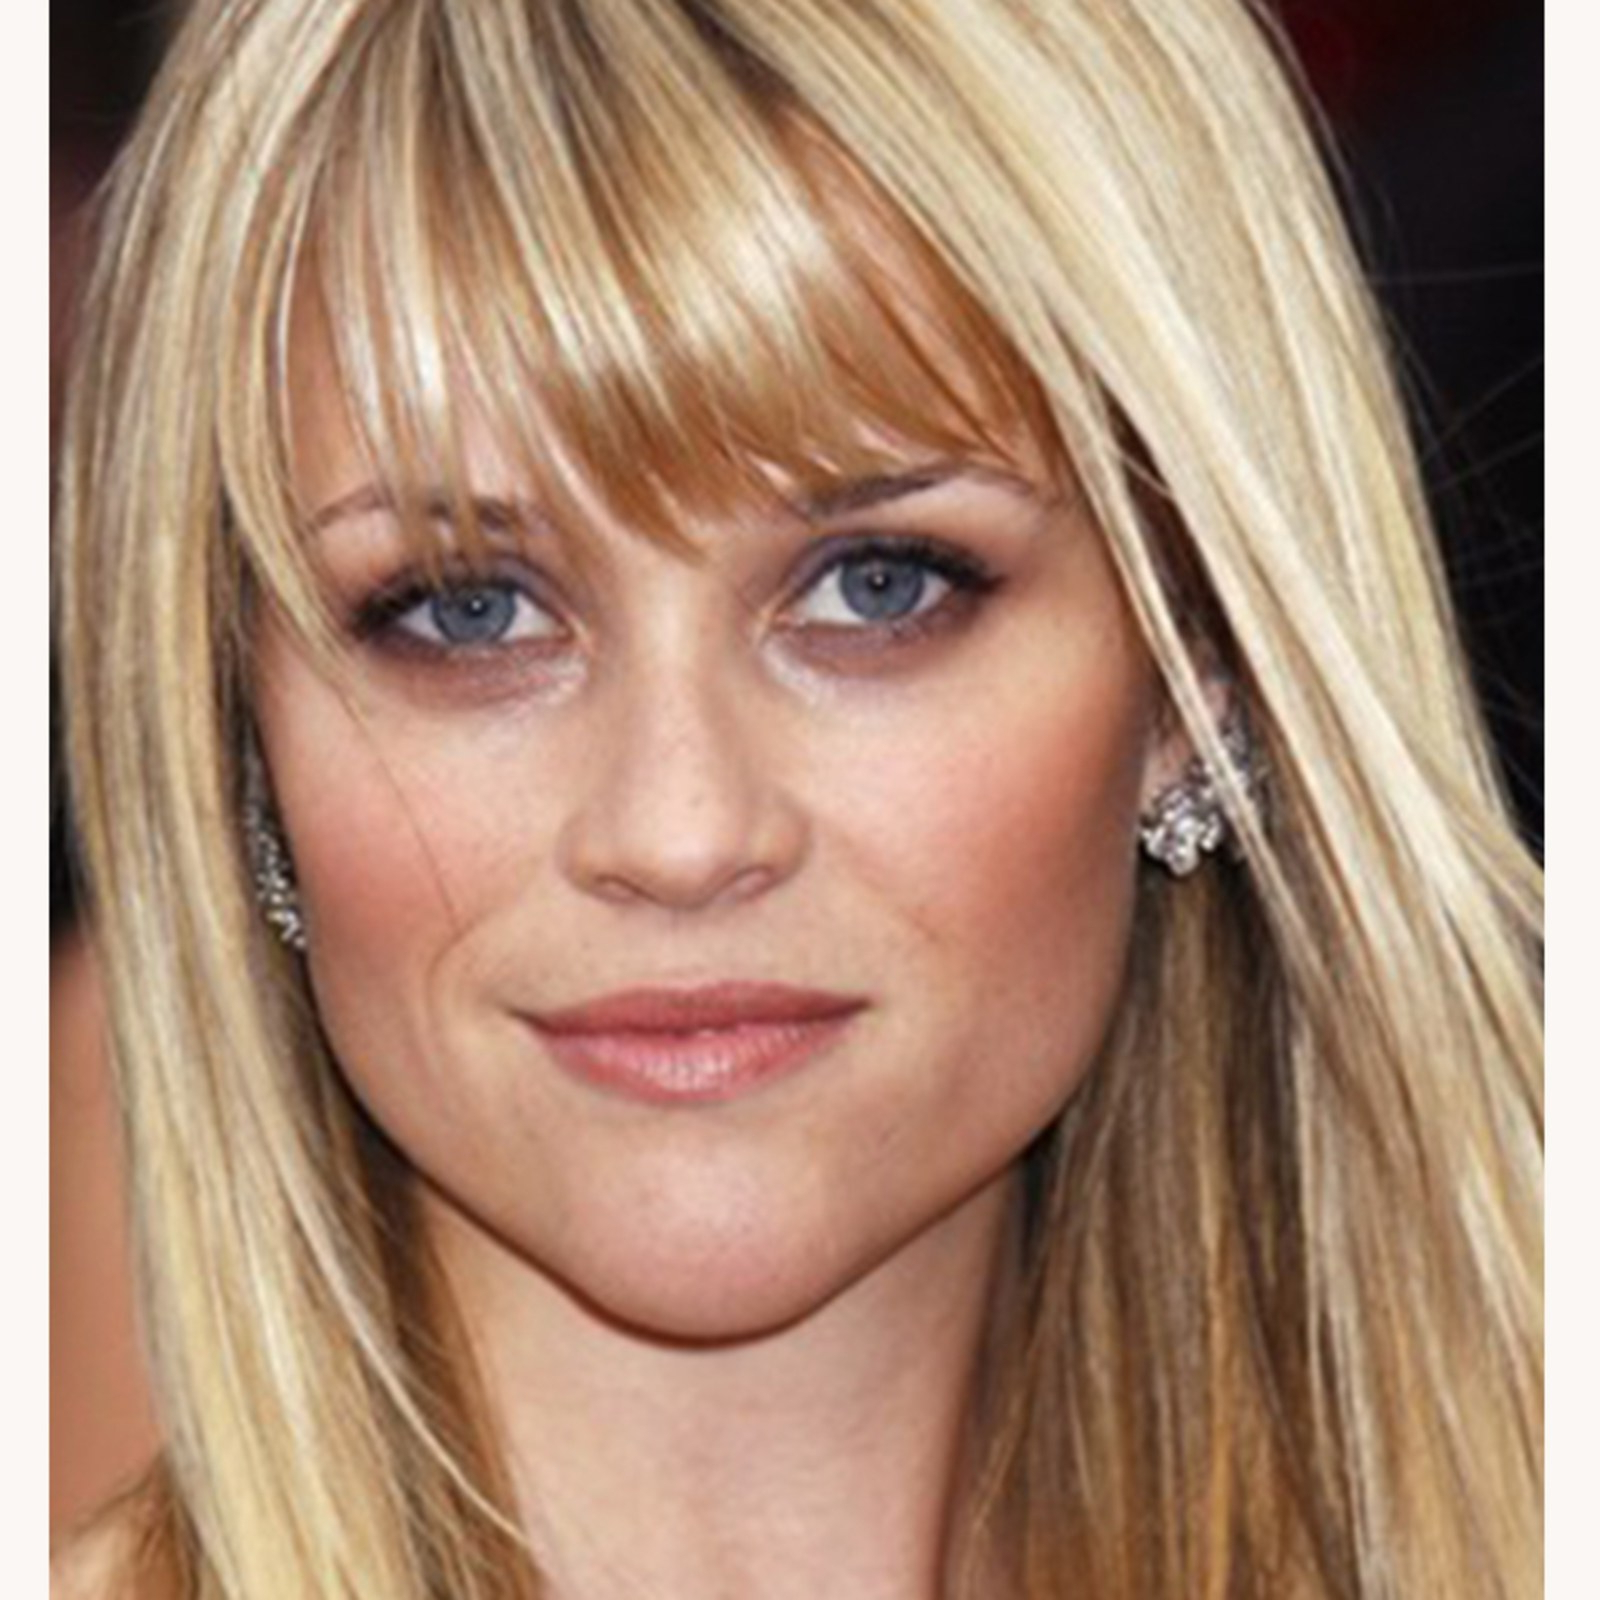 The Top 8 Haircuts For Heart Shaped Faces – Allure Pertaining To Cute Short Haircuts For Heart Shaped Faces (View 5 of 25)